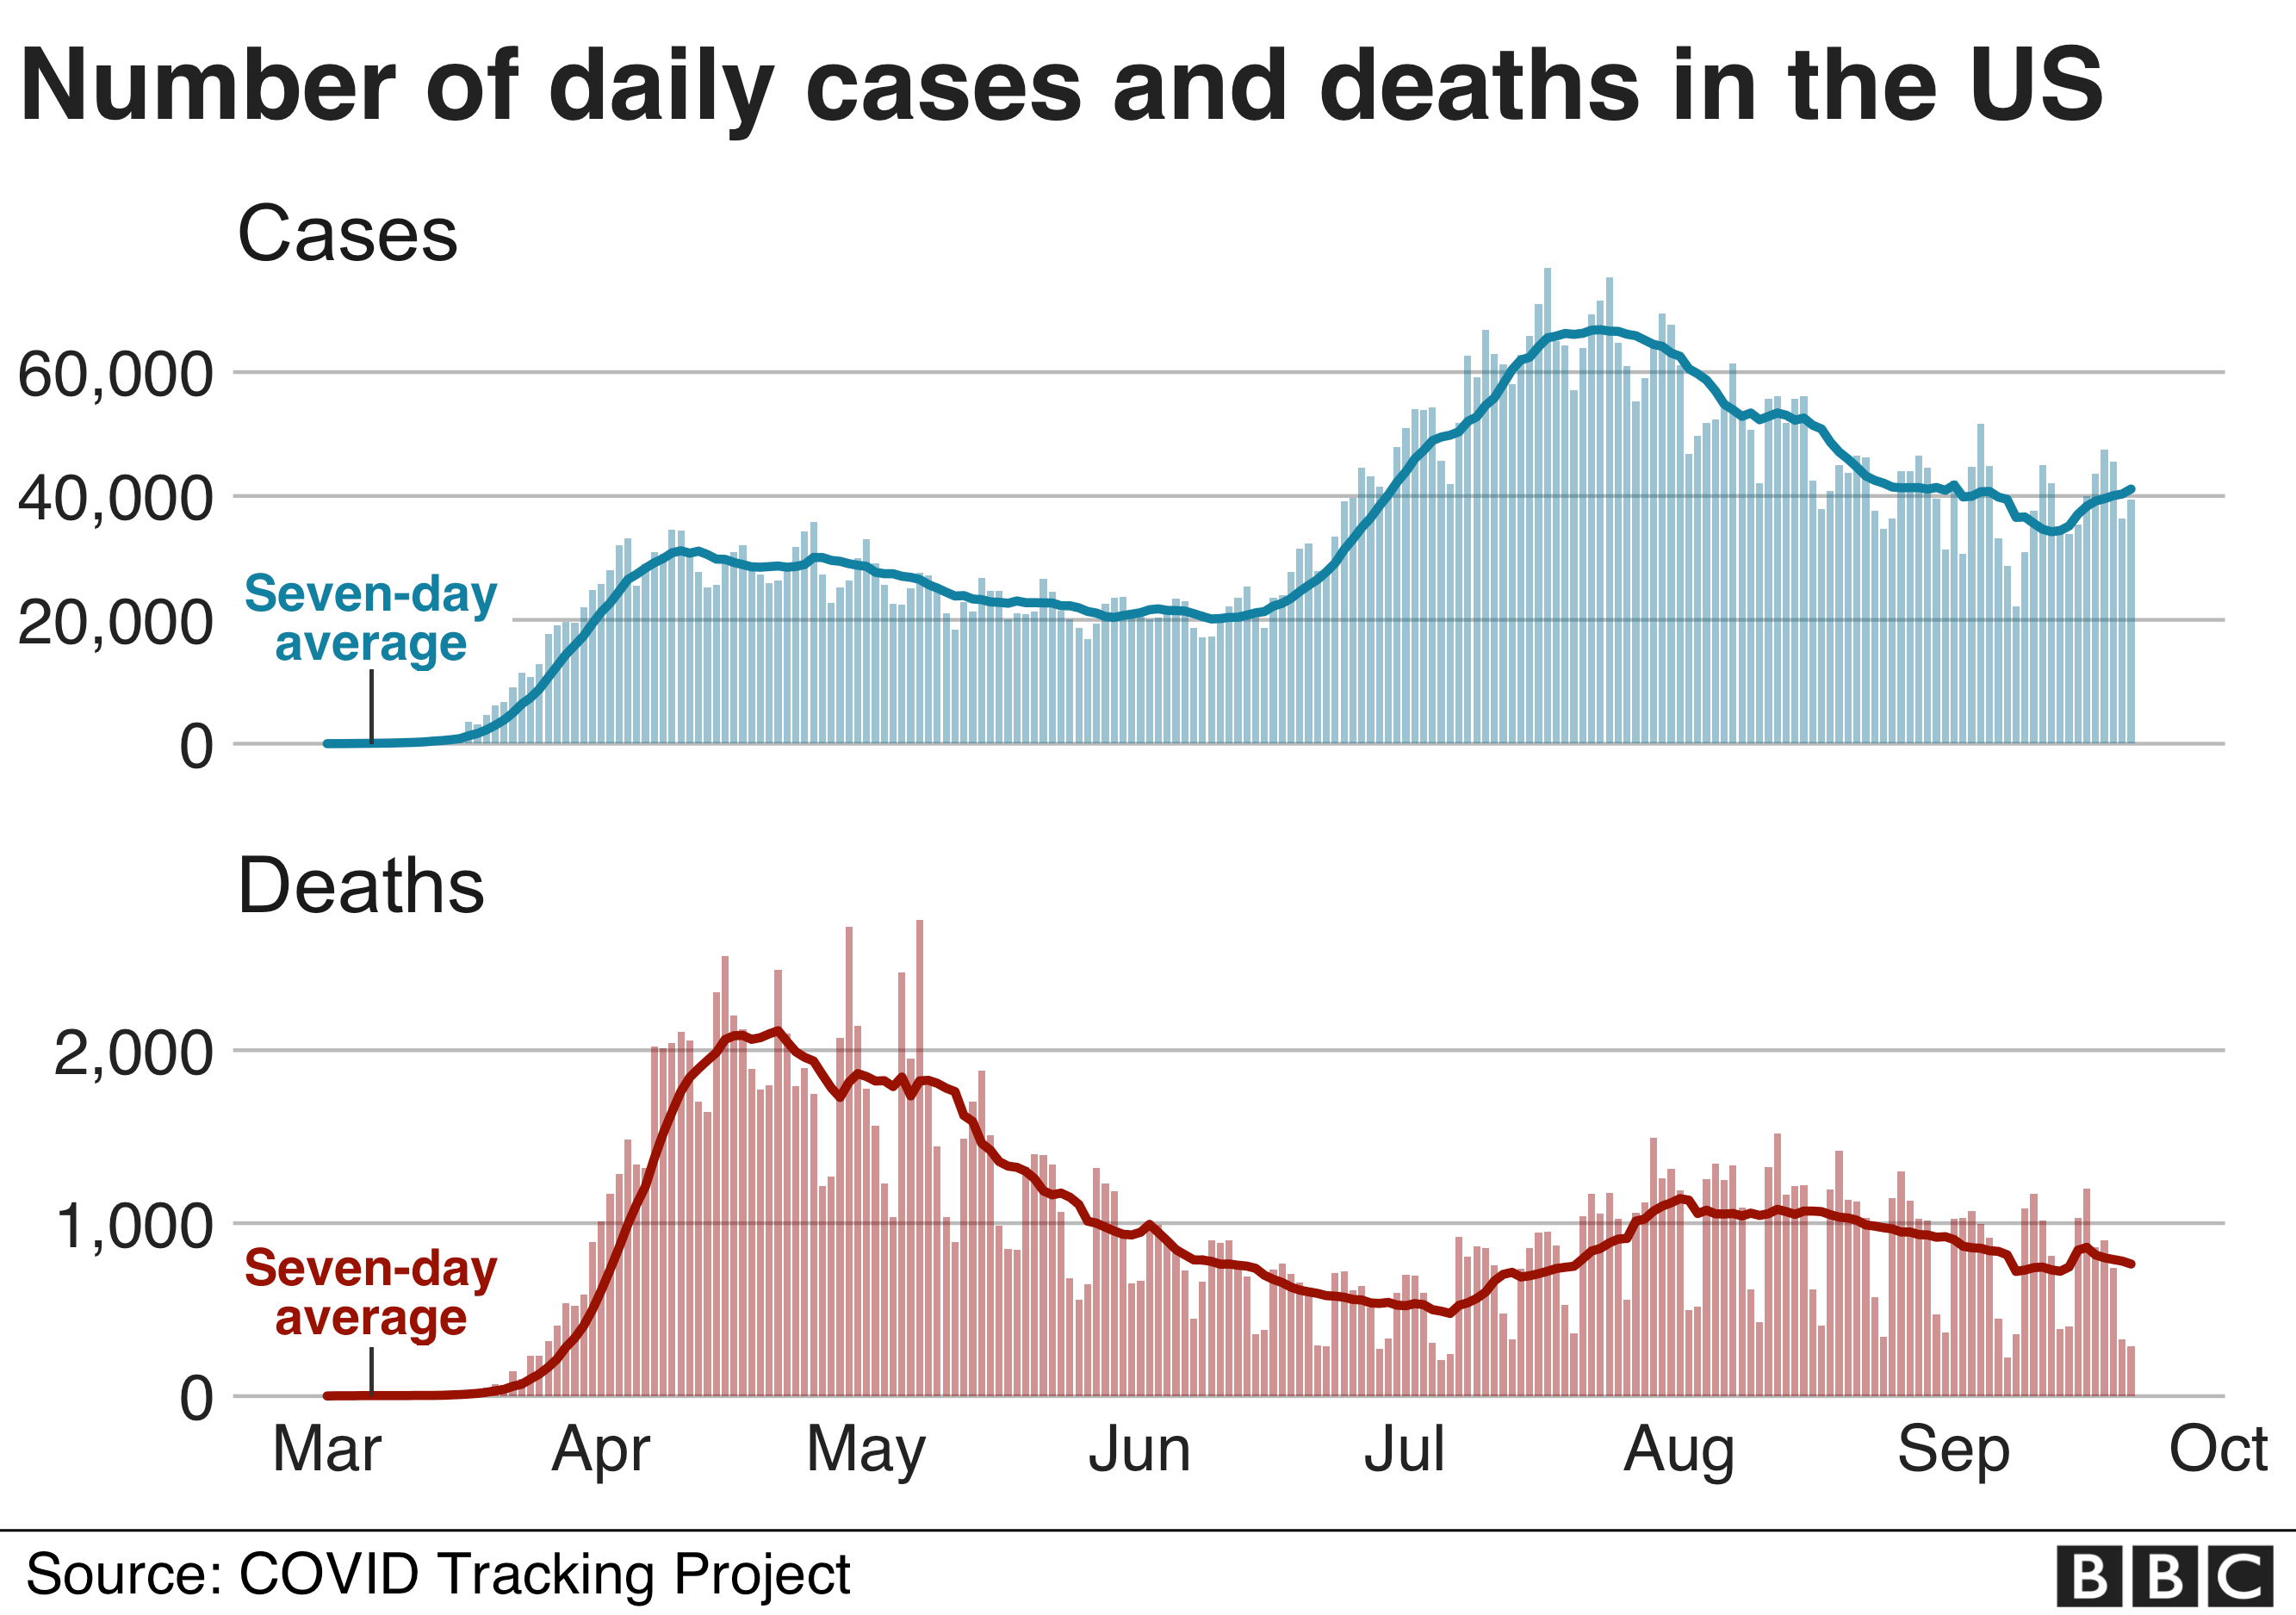 Graph showing number of daily coronavirus cases and deaths in the US